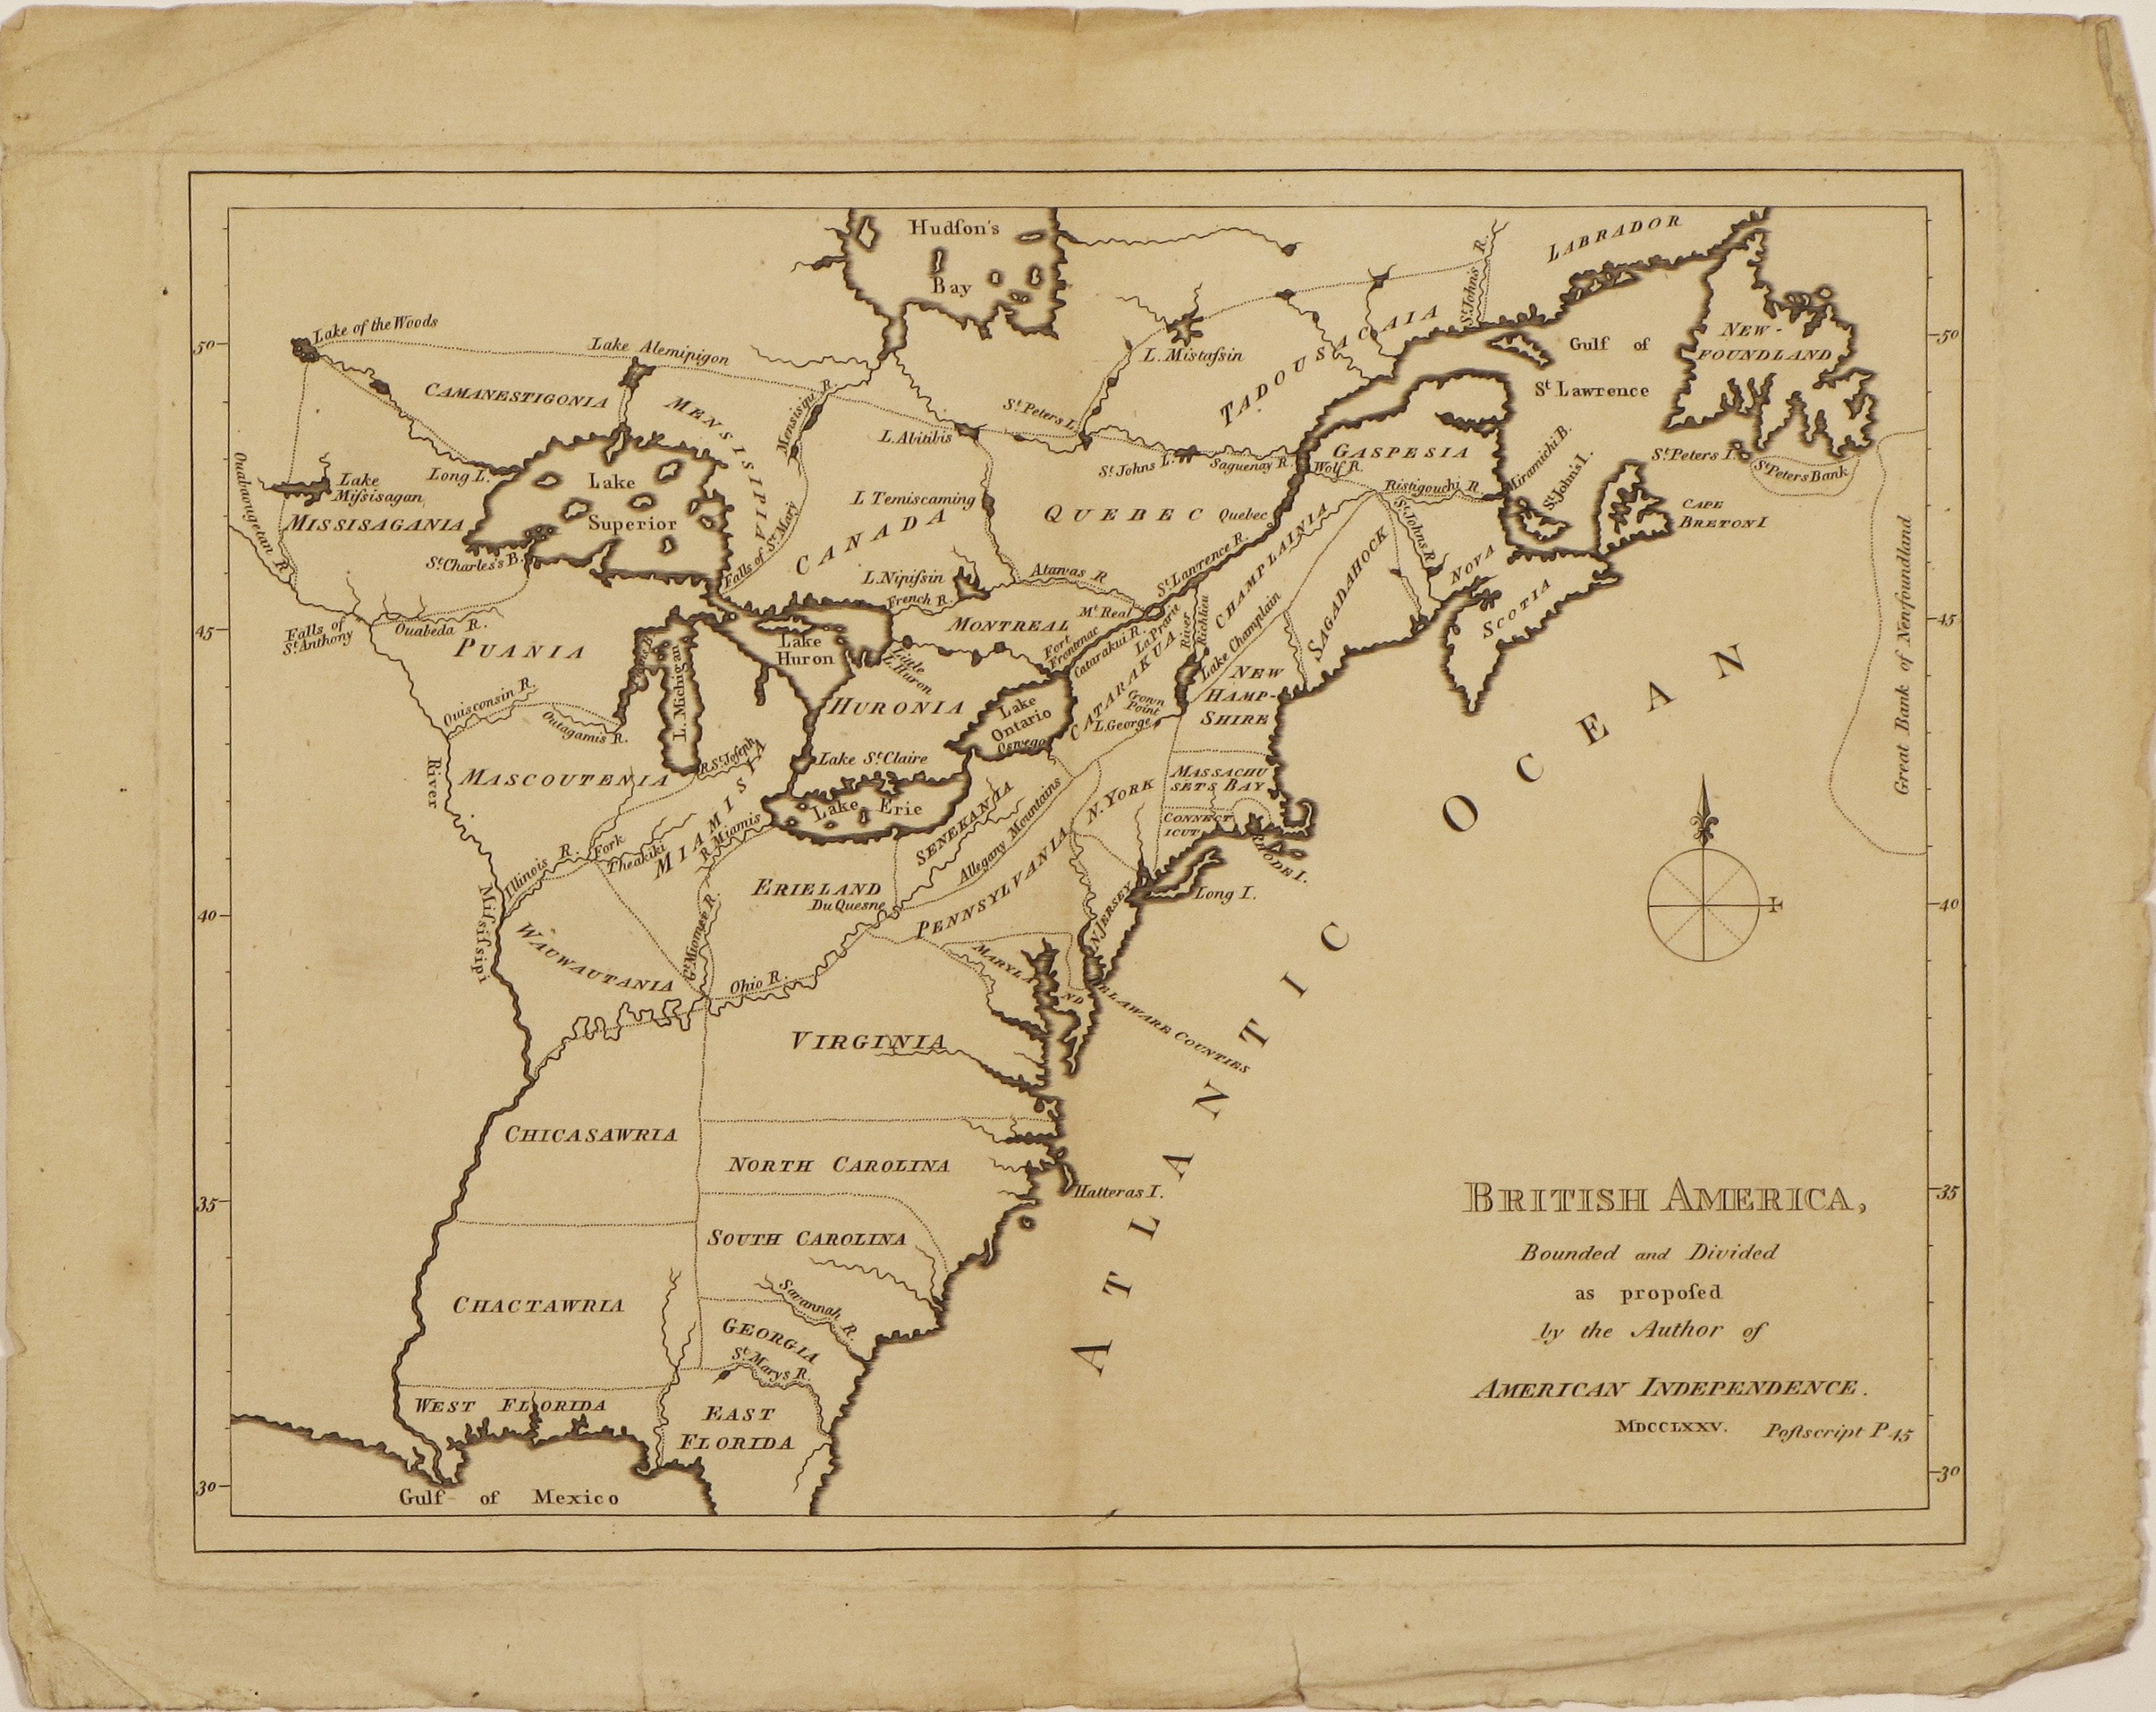 American independence... mapped by a British naval officer in 1775 on independence ohio map, tocqueville 1831 u s states map, independence ca, usa map, independence us flag, city of independence ia map, fort independence location on map,